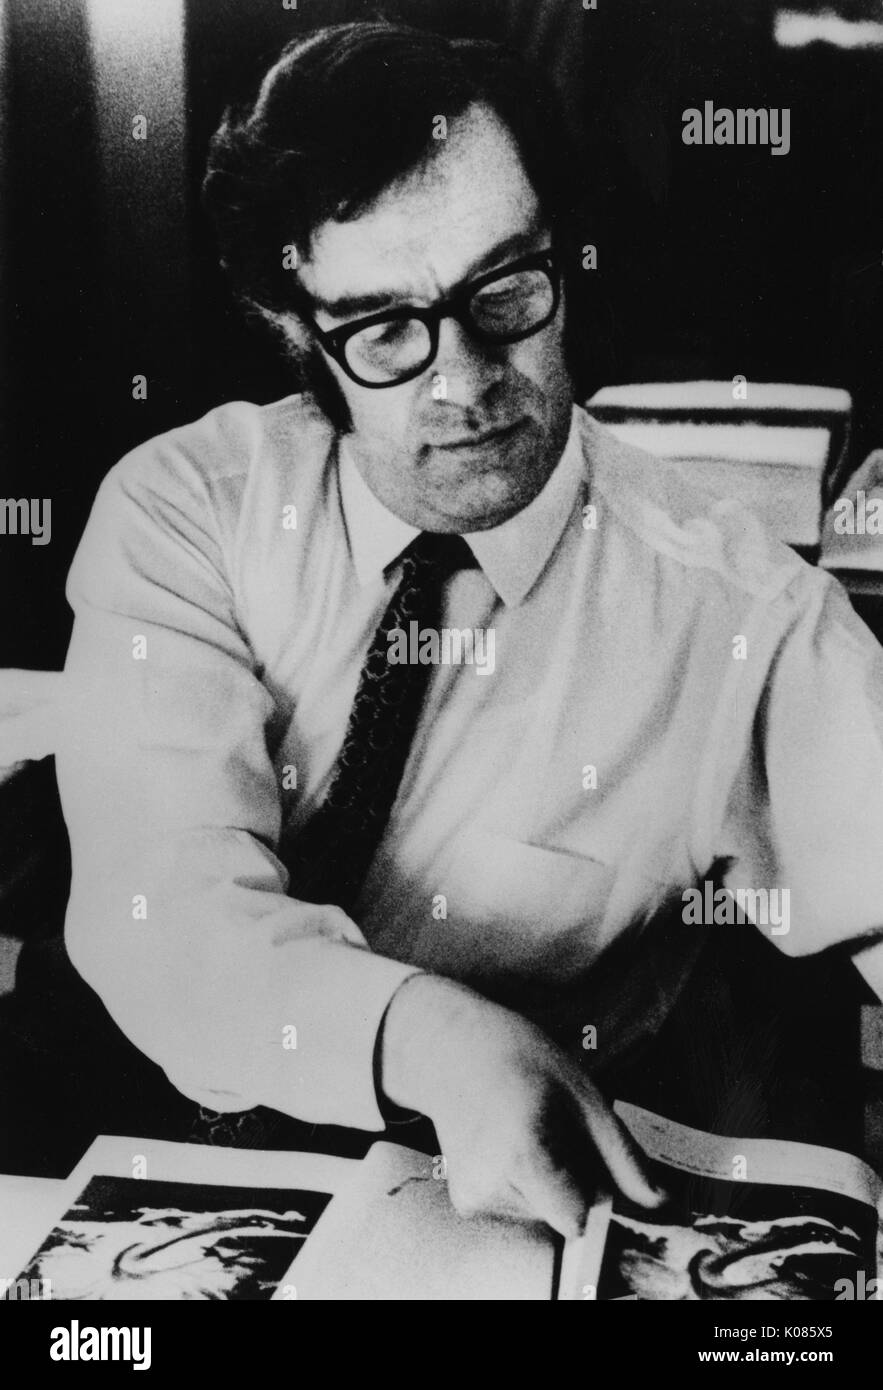 Half-length portrait of author Isaac Asimov, wearing a white shirt, sitting over a table, flipping through pages of a book, wearing glasses and a patterned tie, with a serious facial expression, 1970. - Stock Image